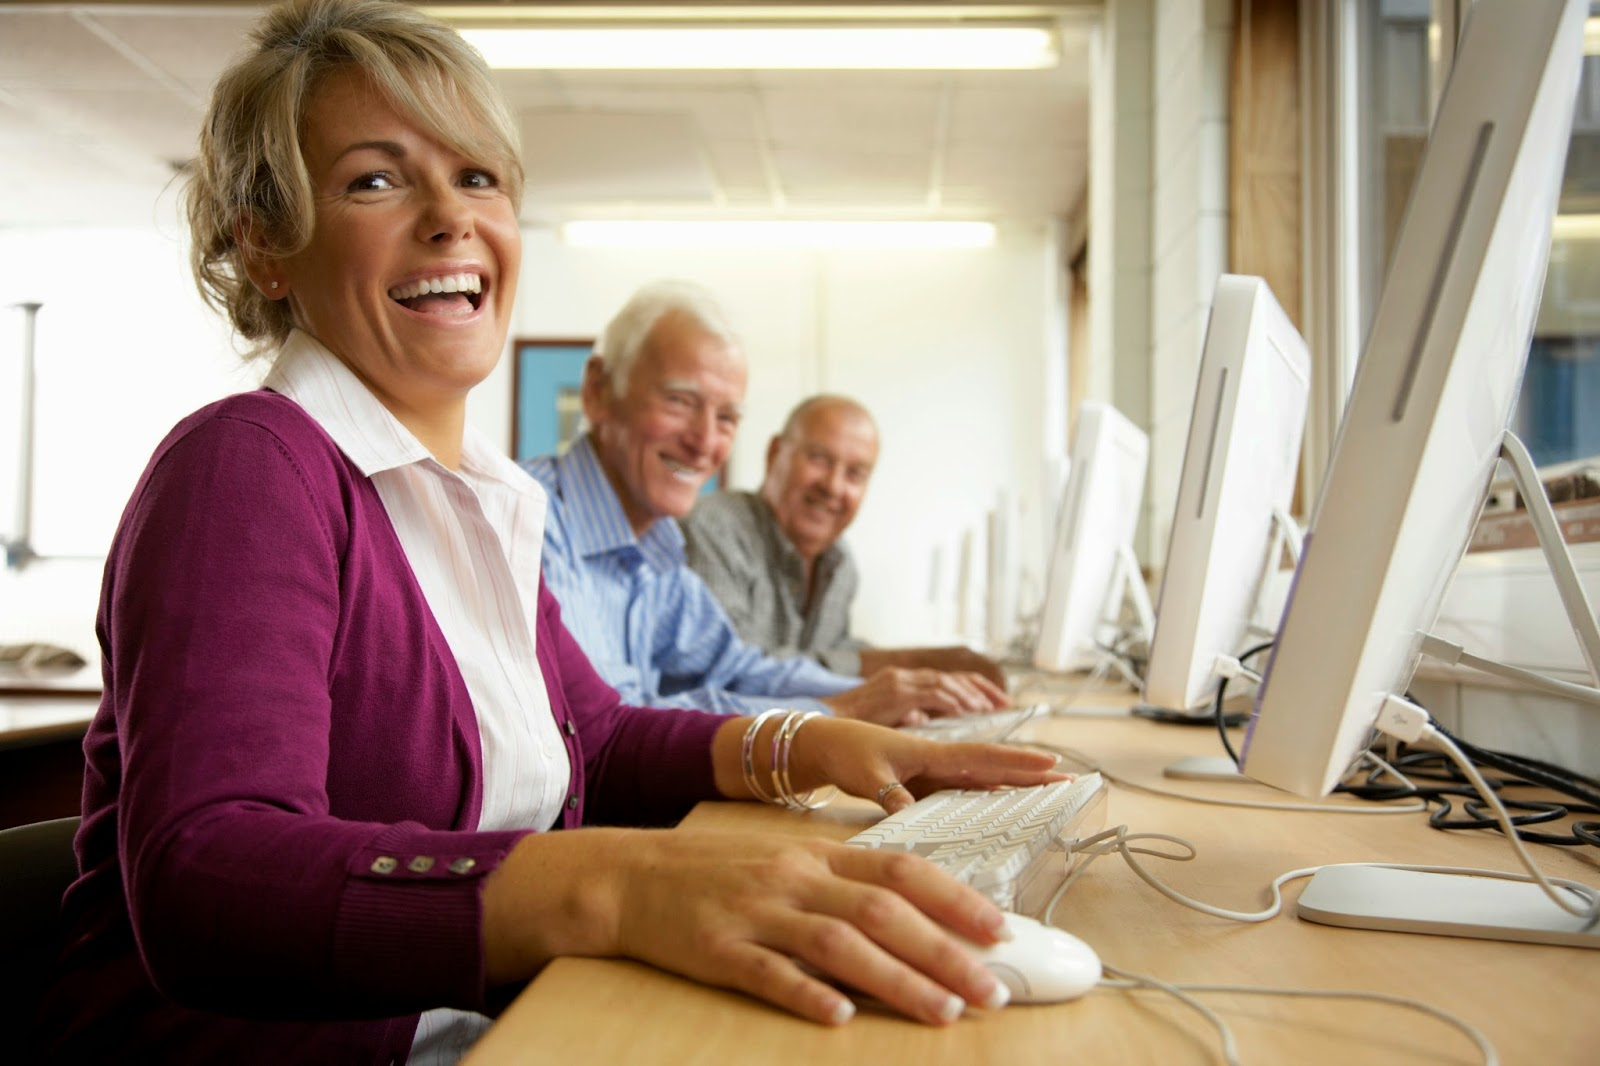 Image of three senior adults using computers